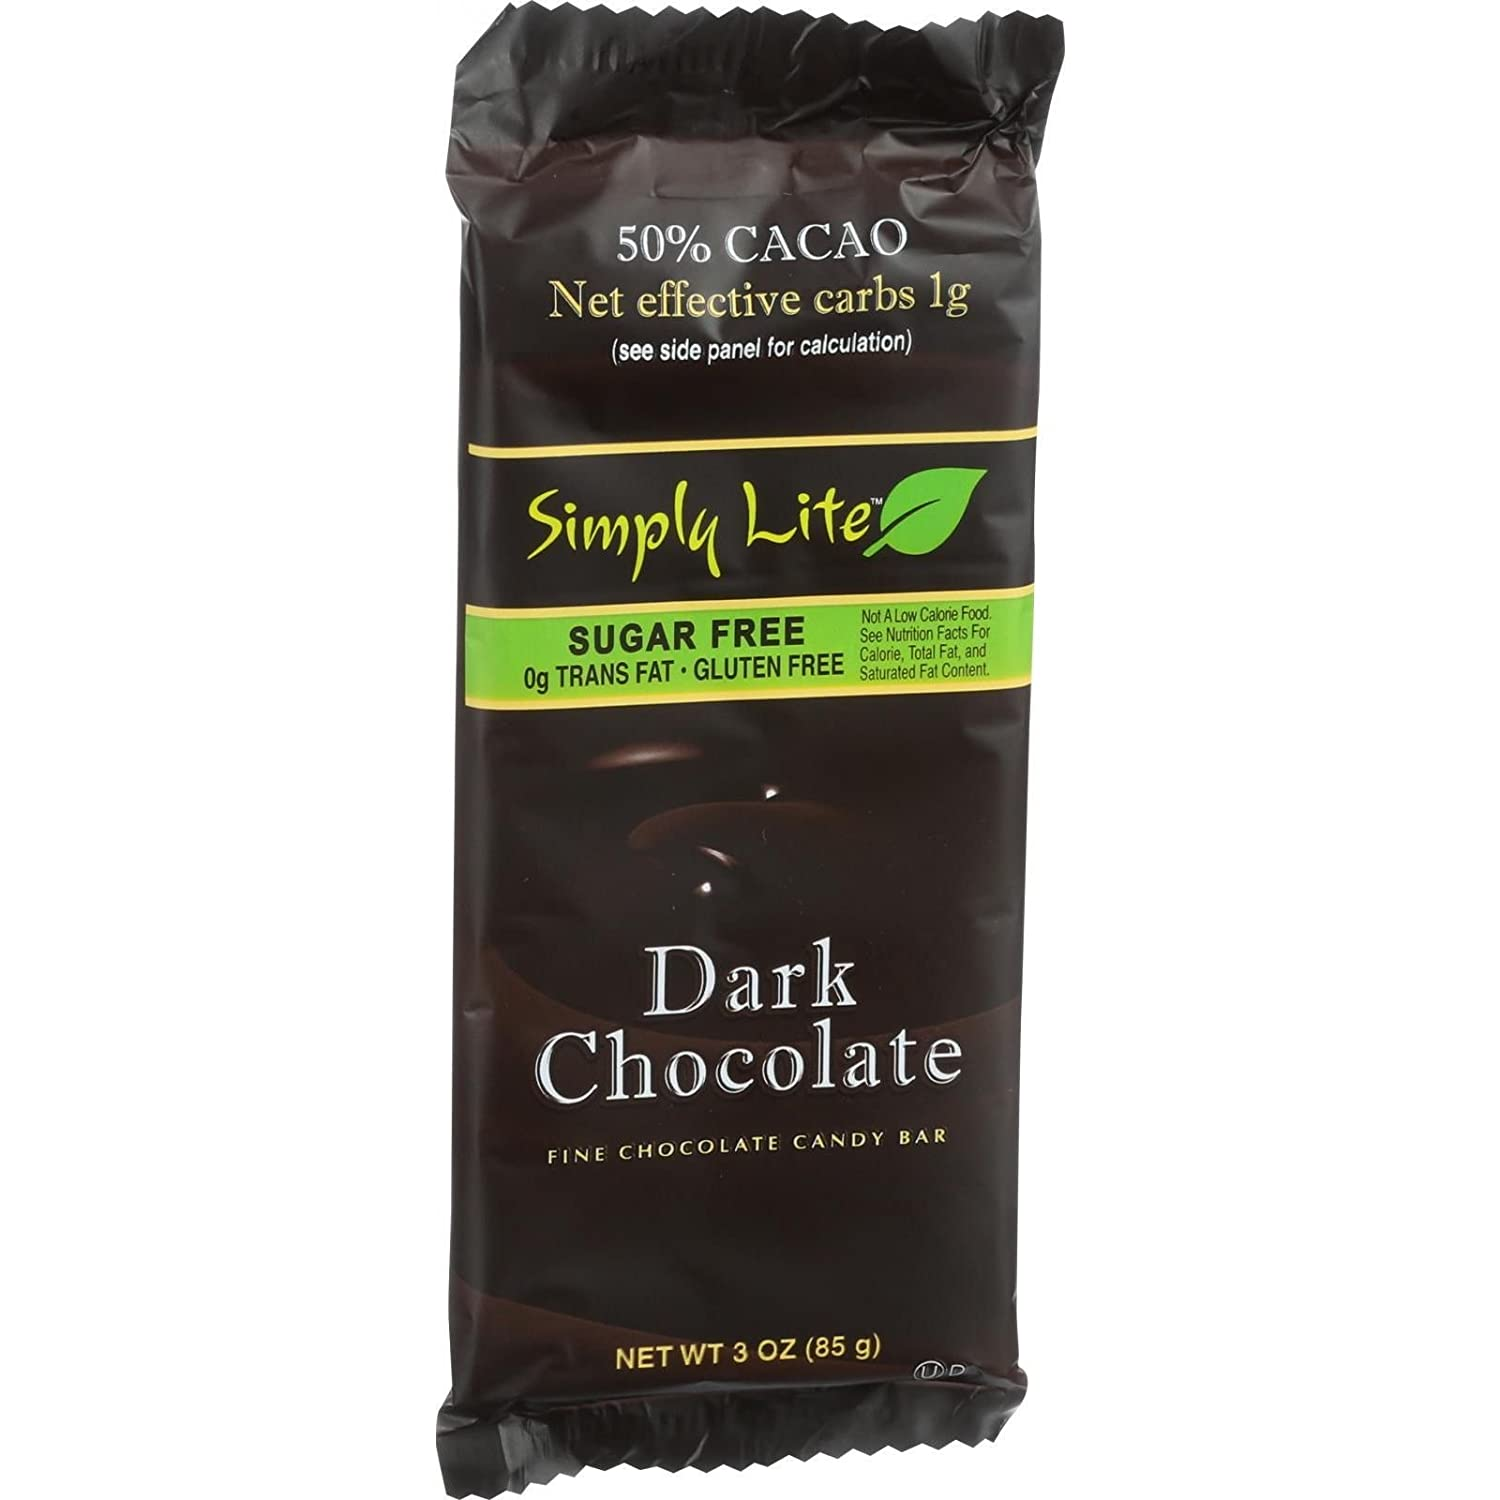 Simply Lite Chocolate Bar - Dark Chocolate - 50 Percent Cacao